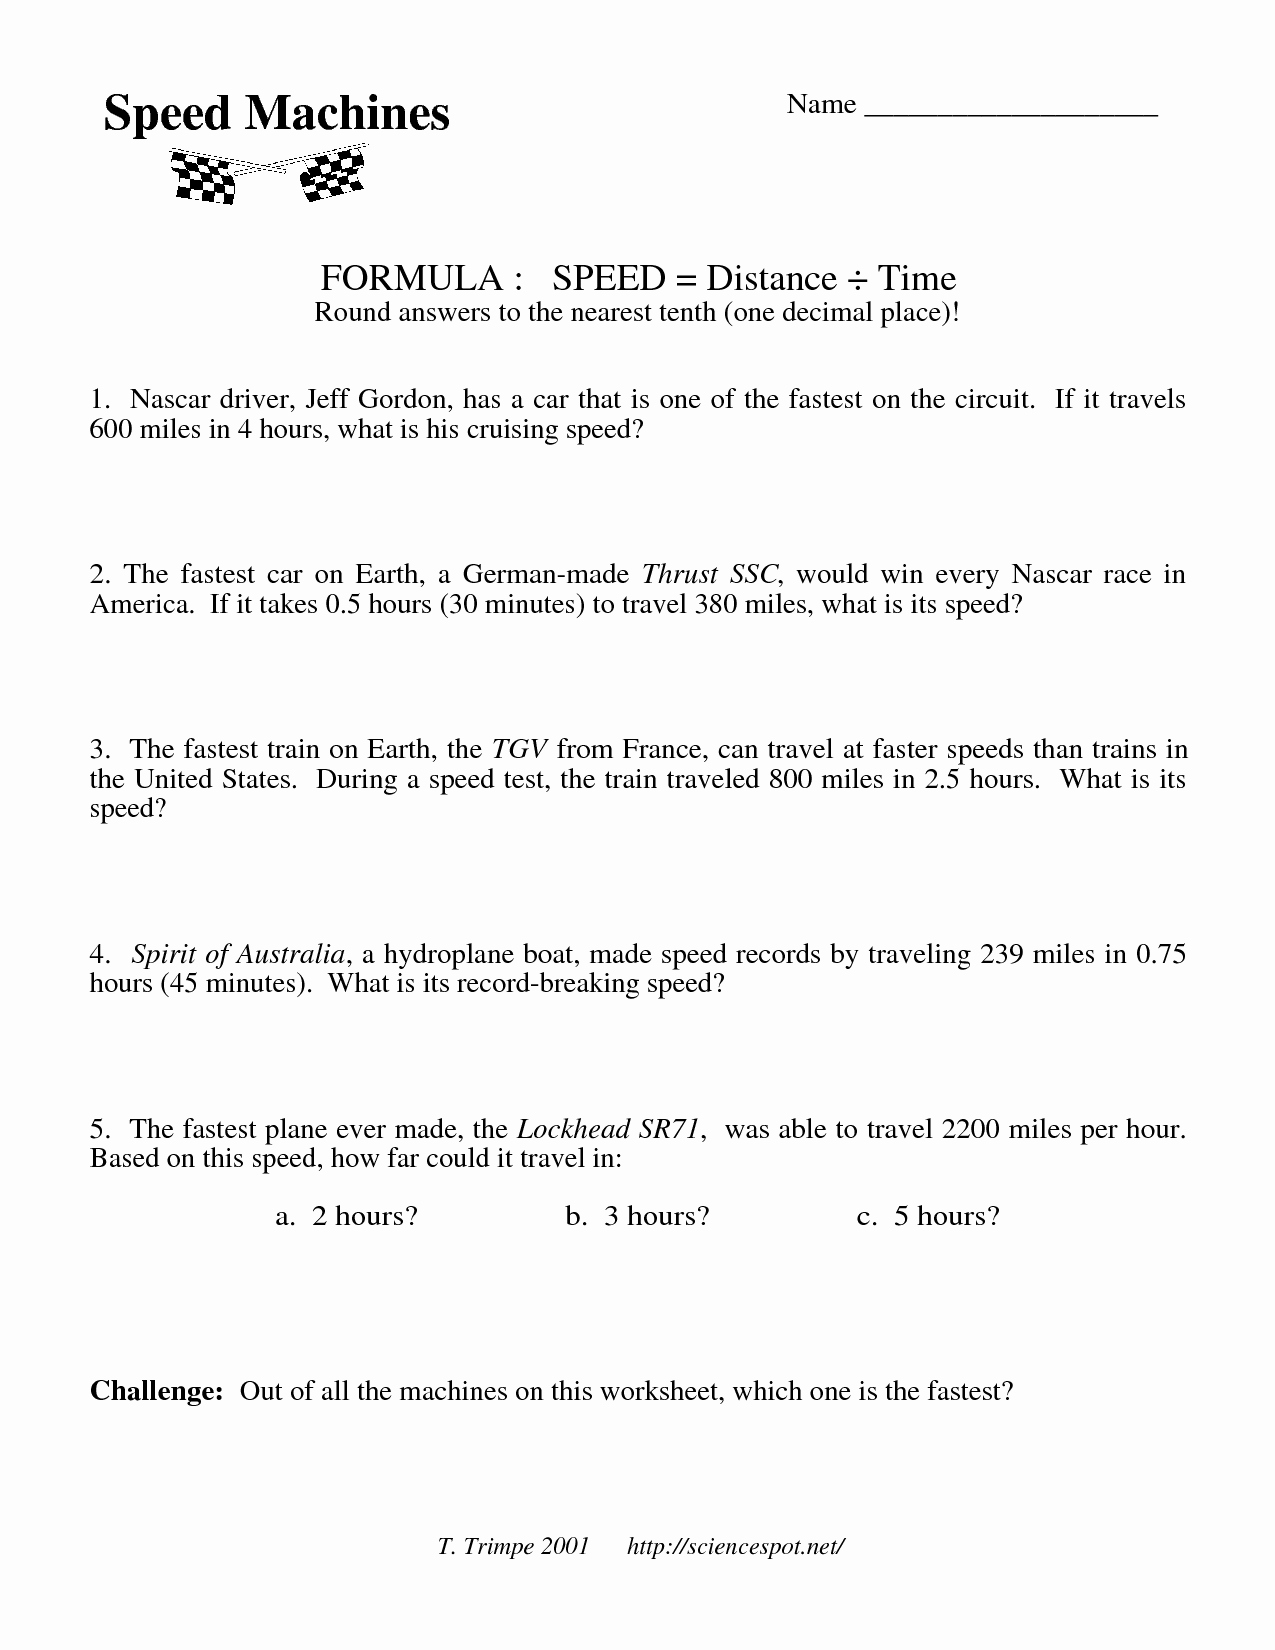 Speed Time and Distance Worksheet Best Of 17 Best Of Speed formula Worksheet Speed and